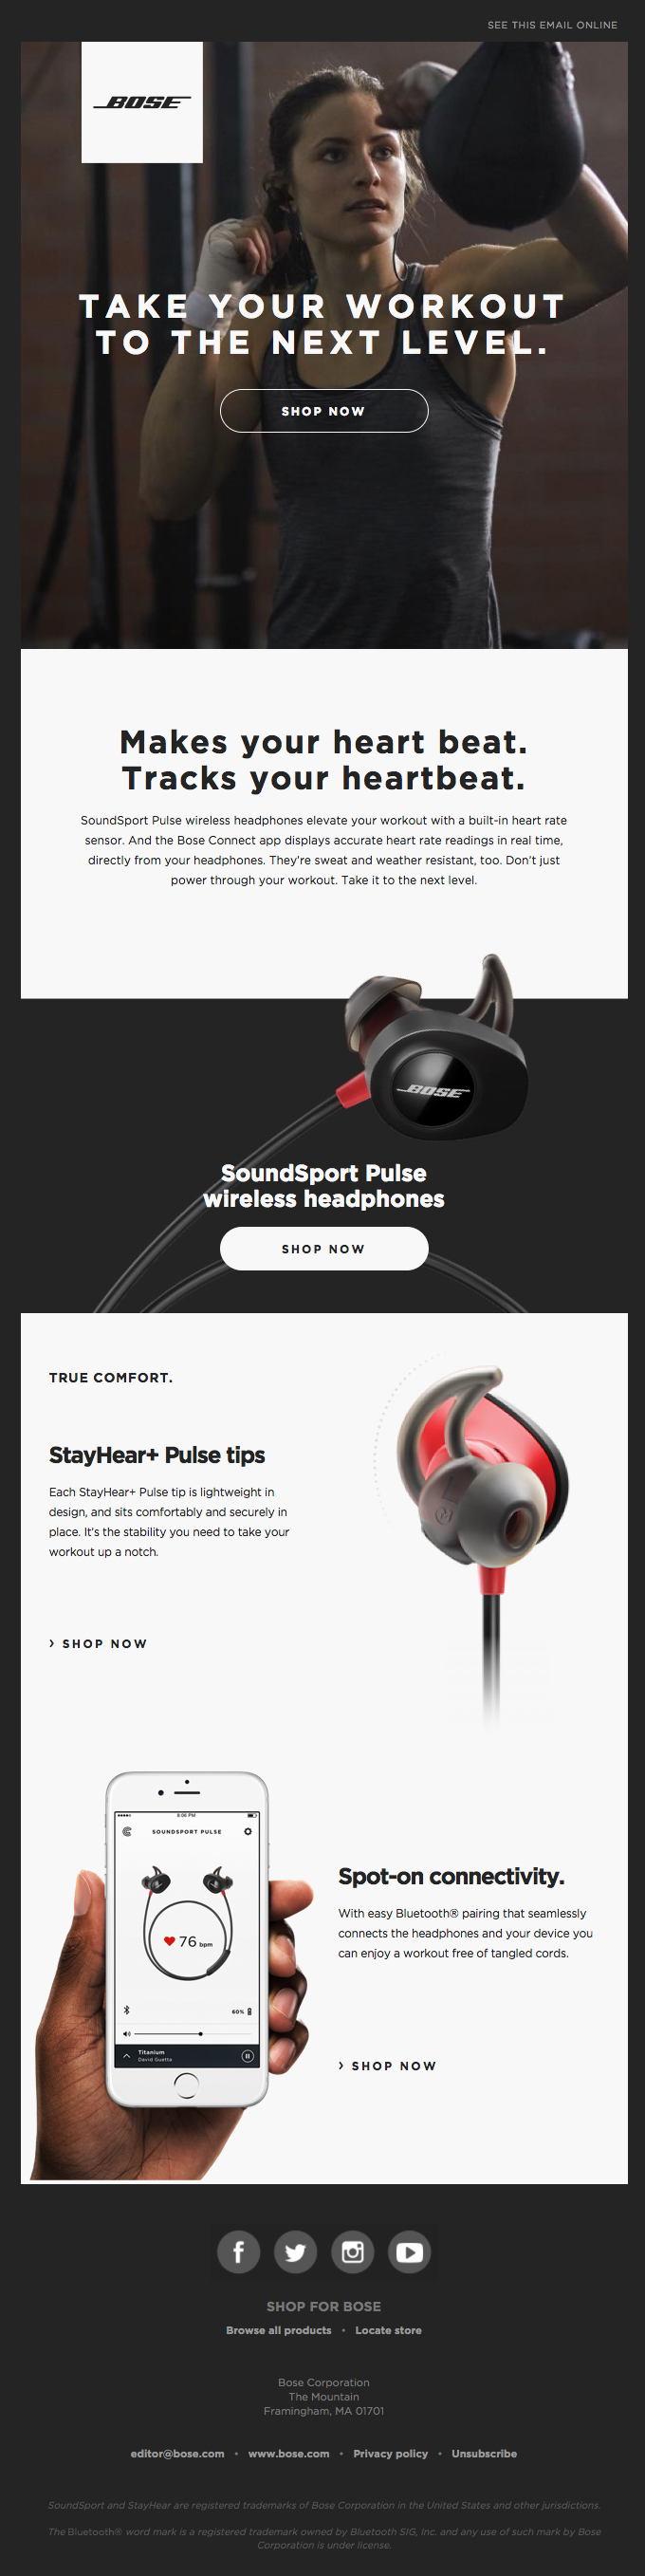 Your Best Workout Starts Now | SoundSport Pulse